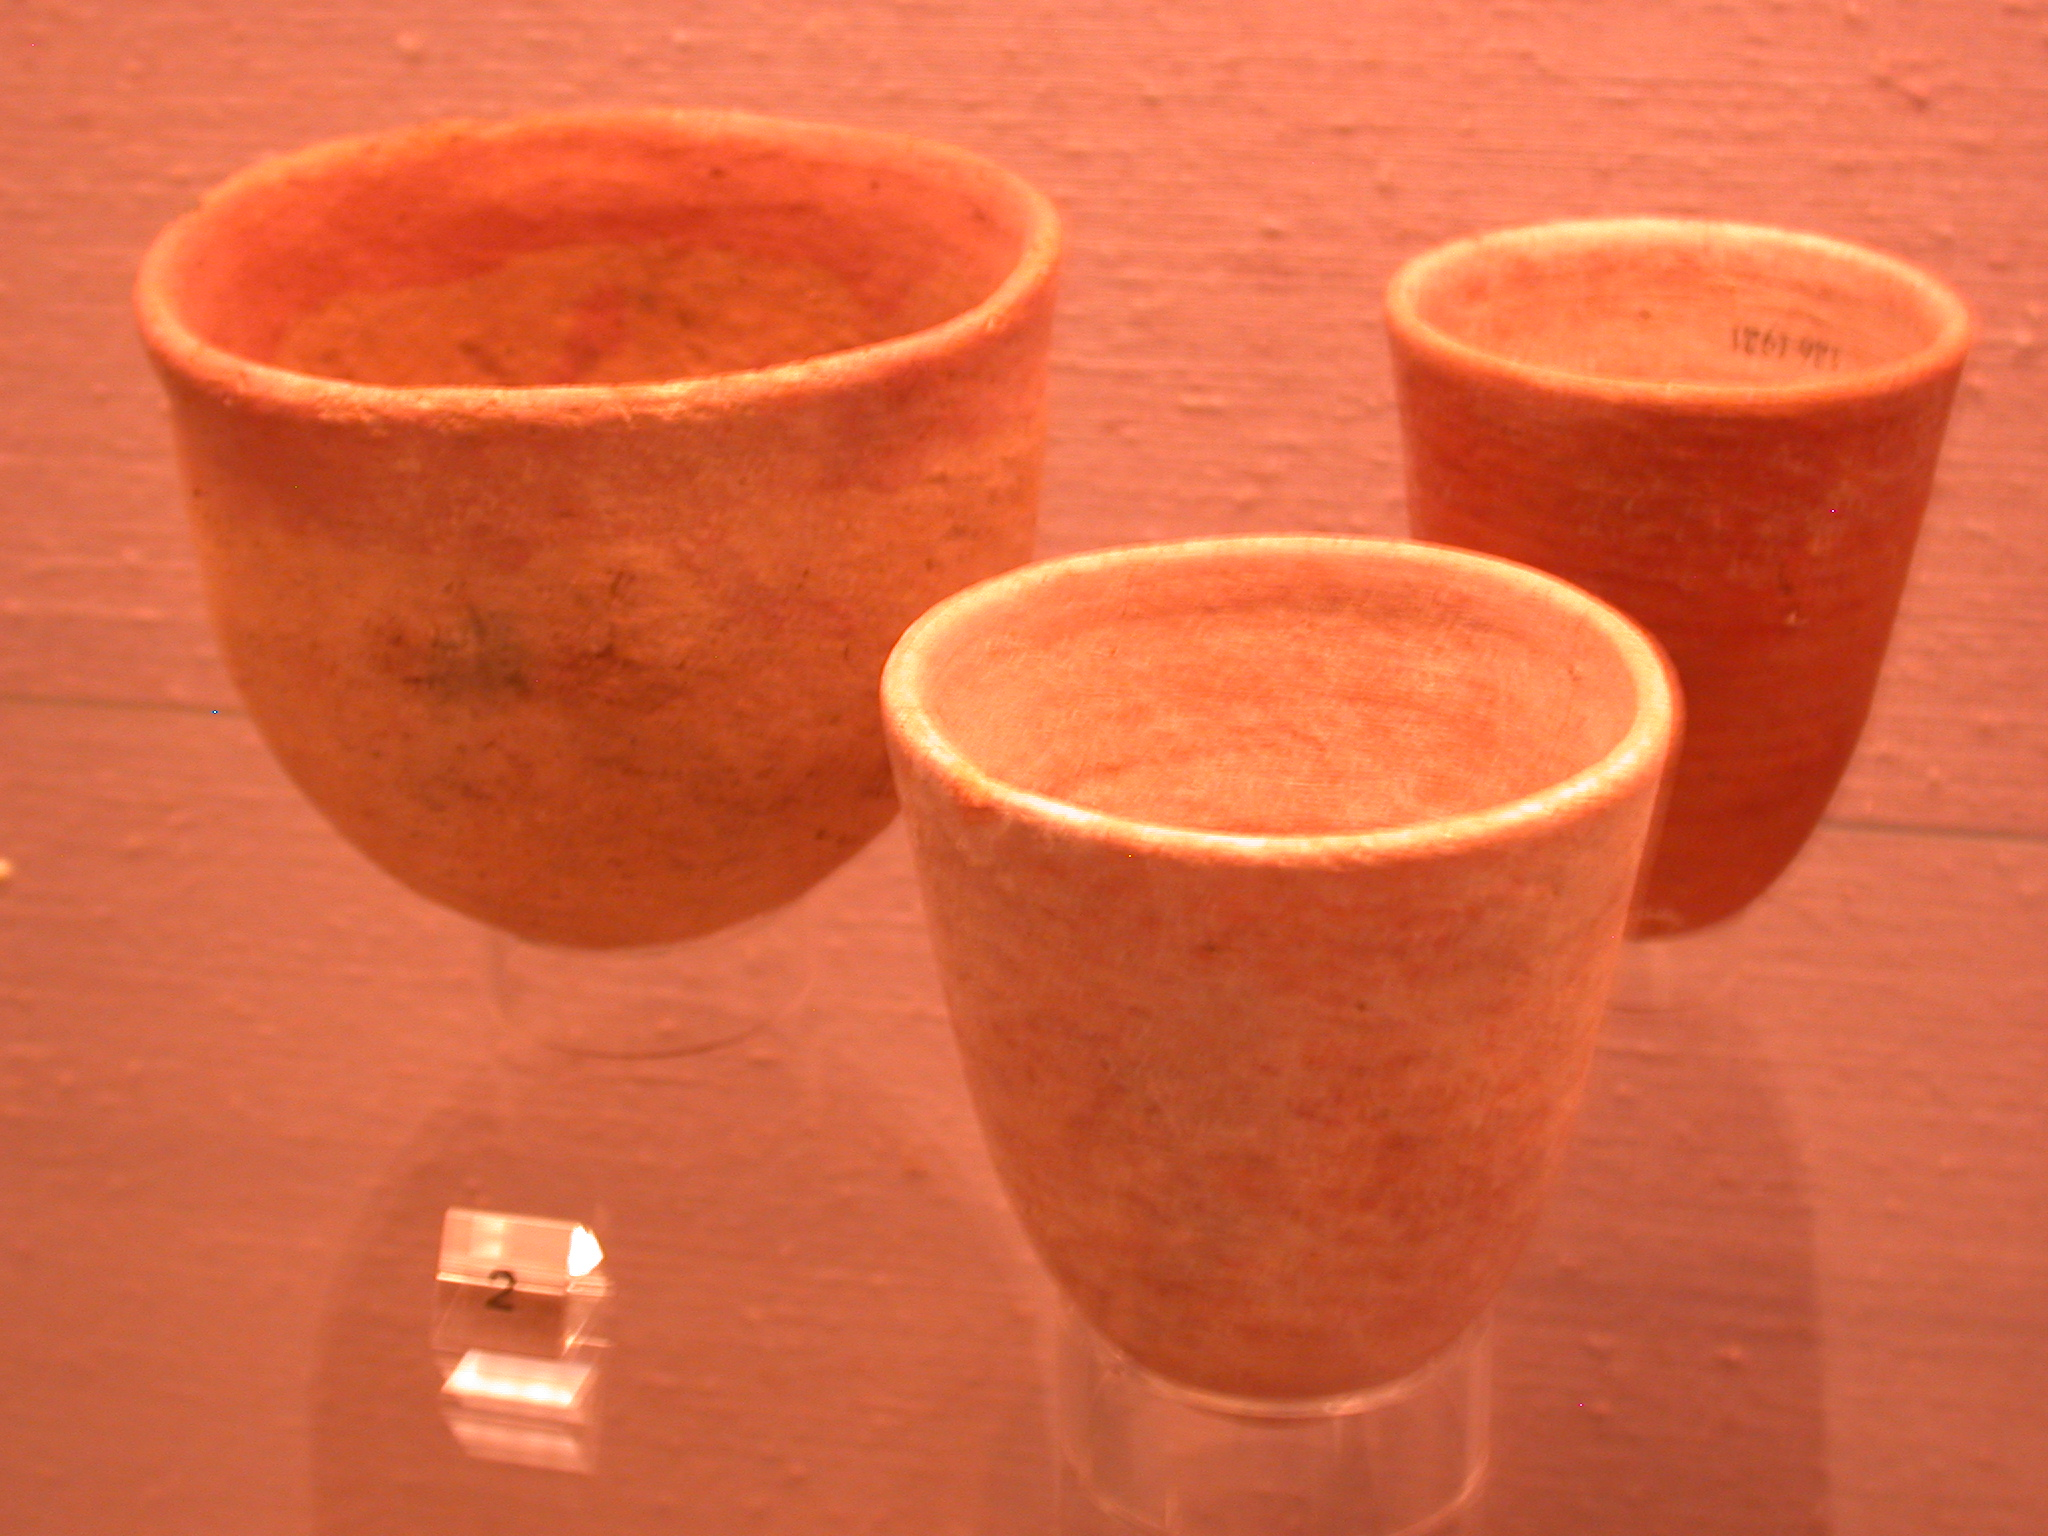 Pottery Vessels, Sanam, 25th Dynasty Sudan, Fitzwilliam Museum, Cambridge, England